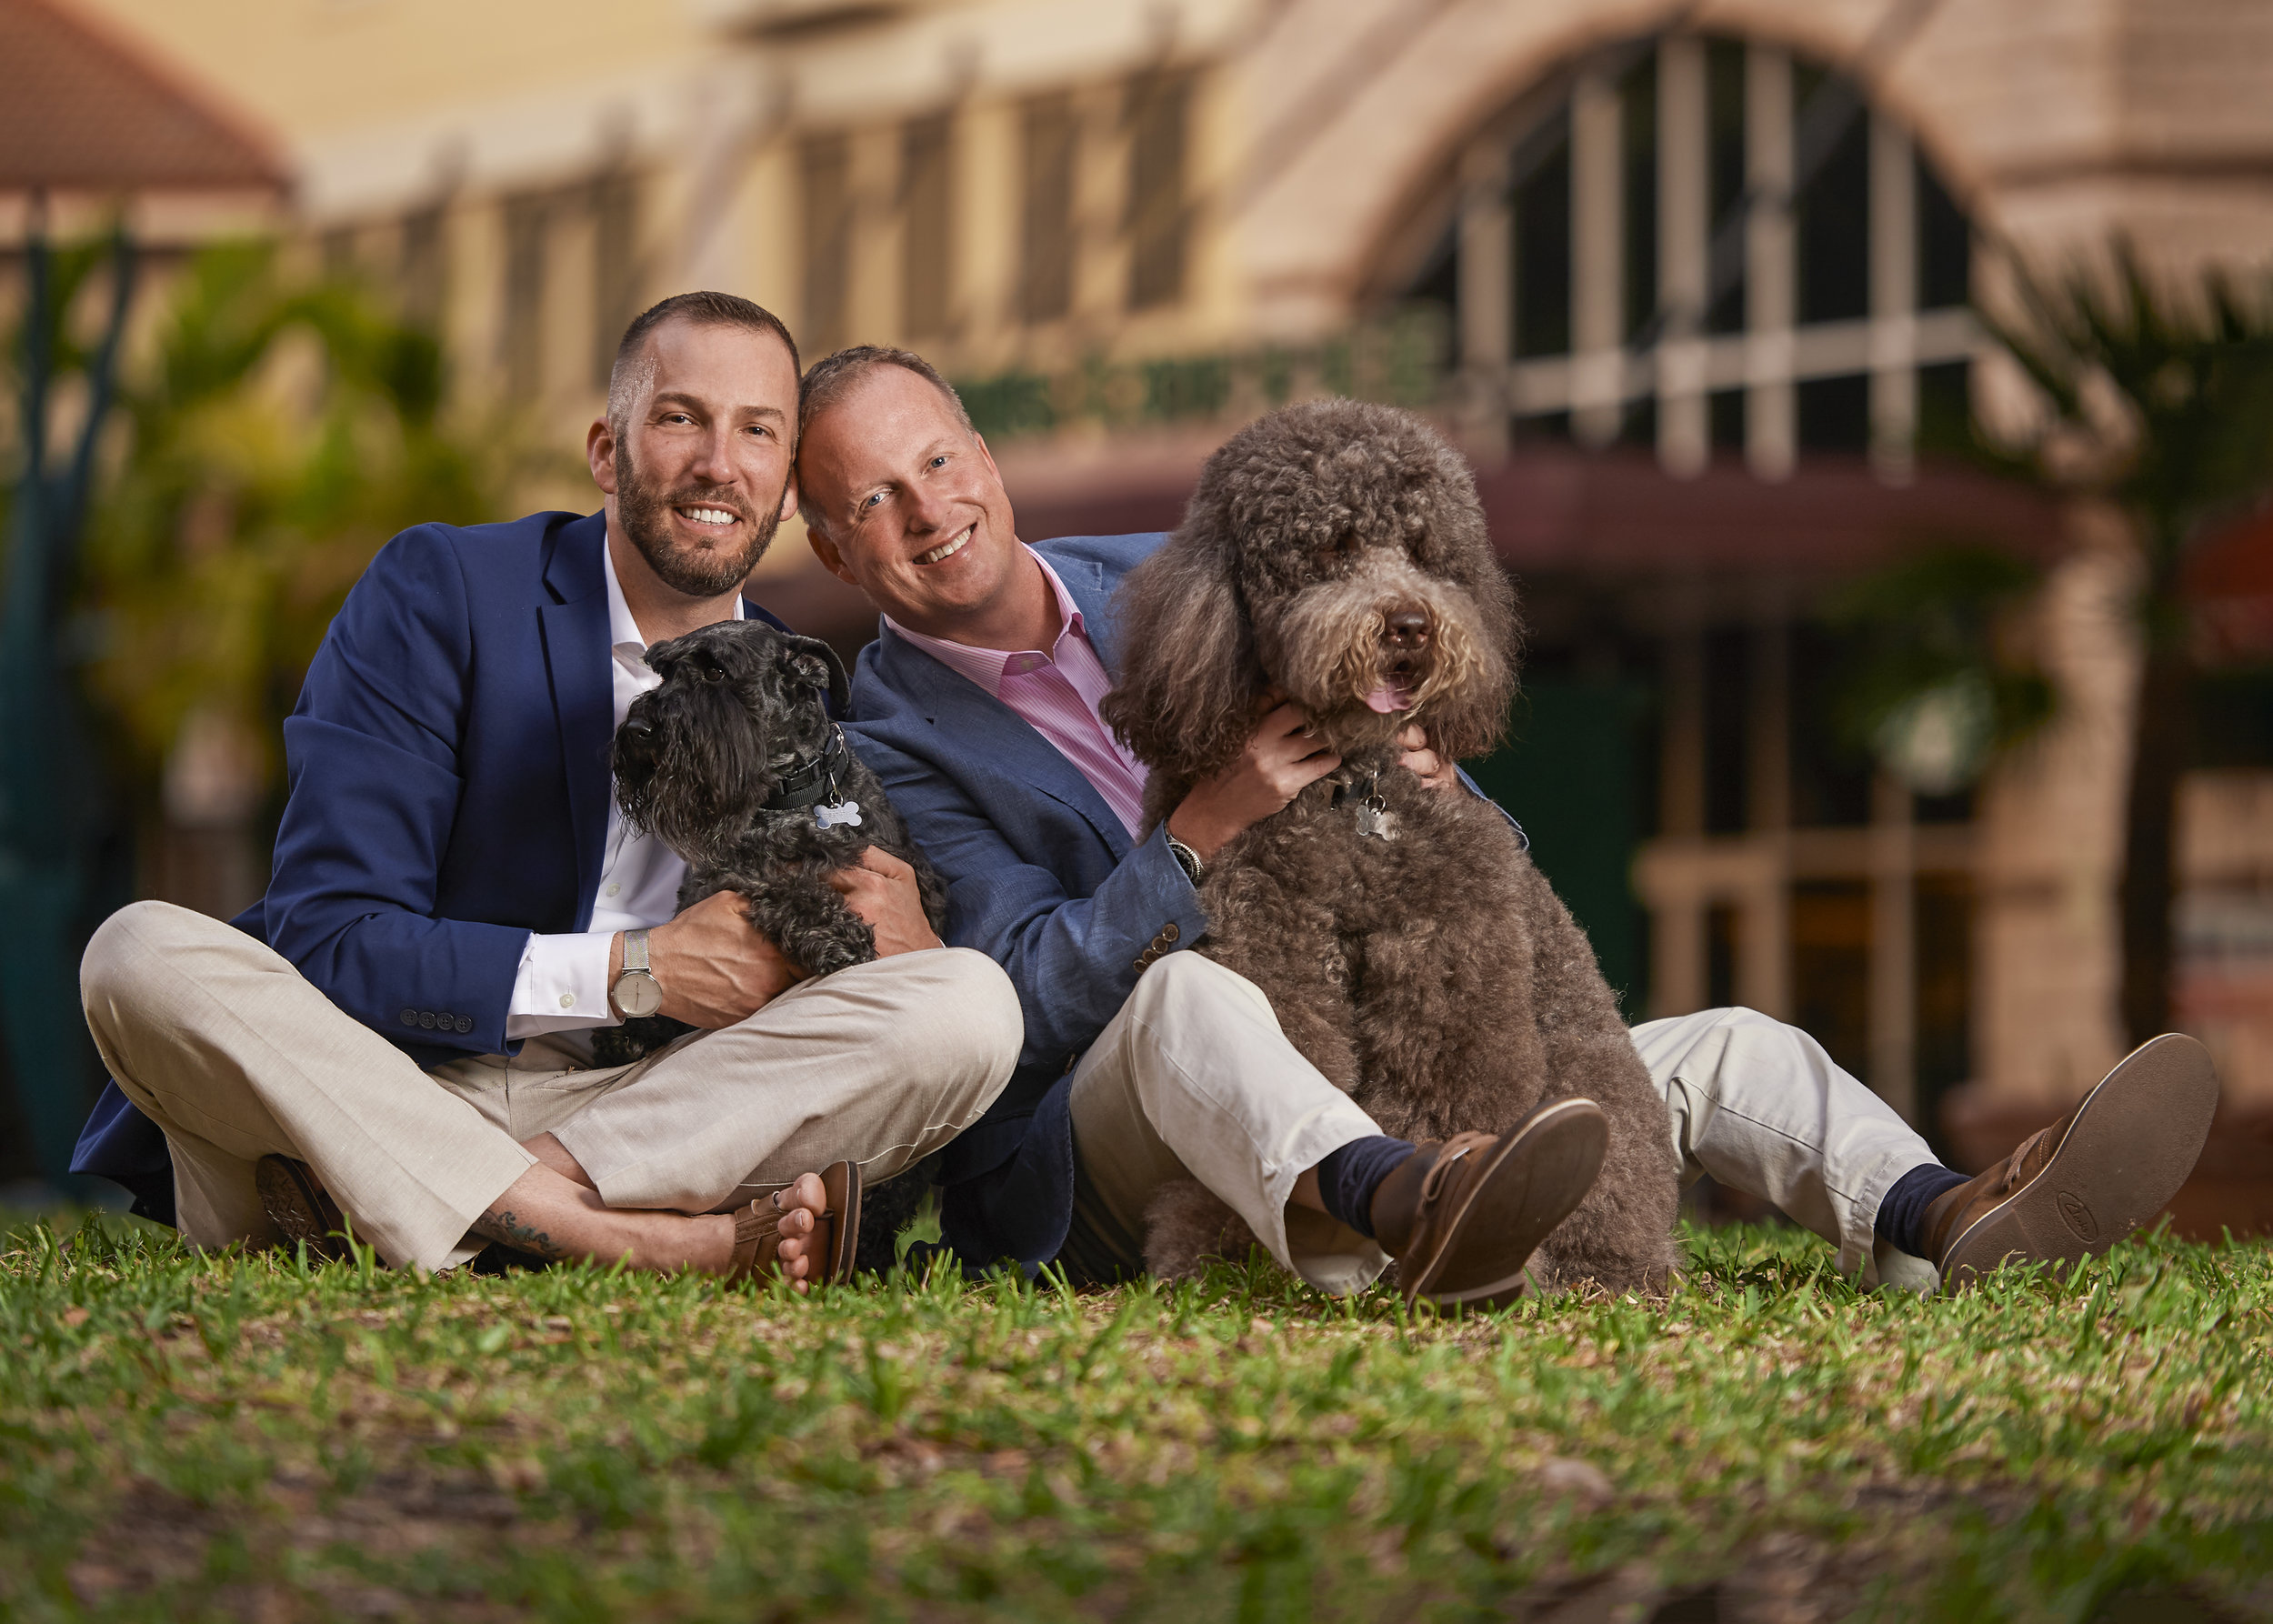 Family portrait photography by Sarasota Photo Studio